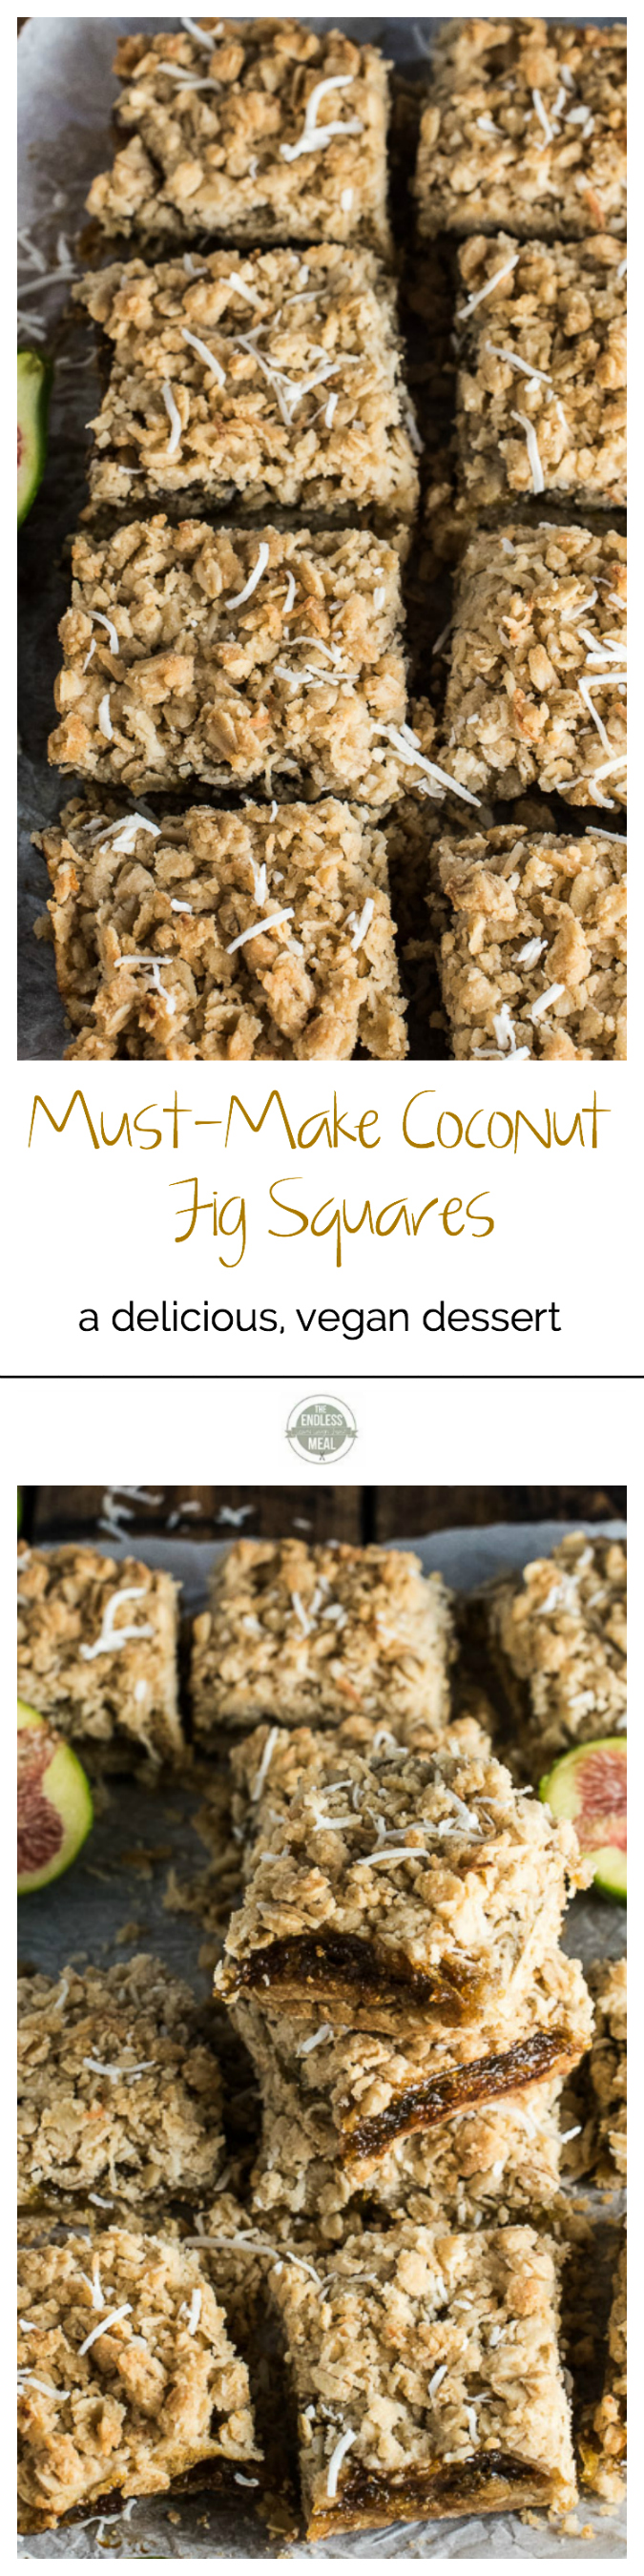 Must-Make Coconut Fig Squares | The Endless Meal